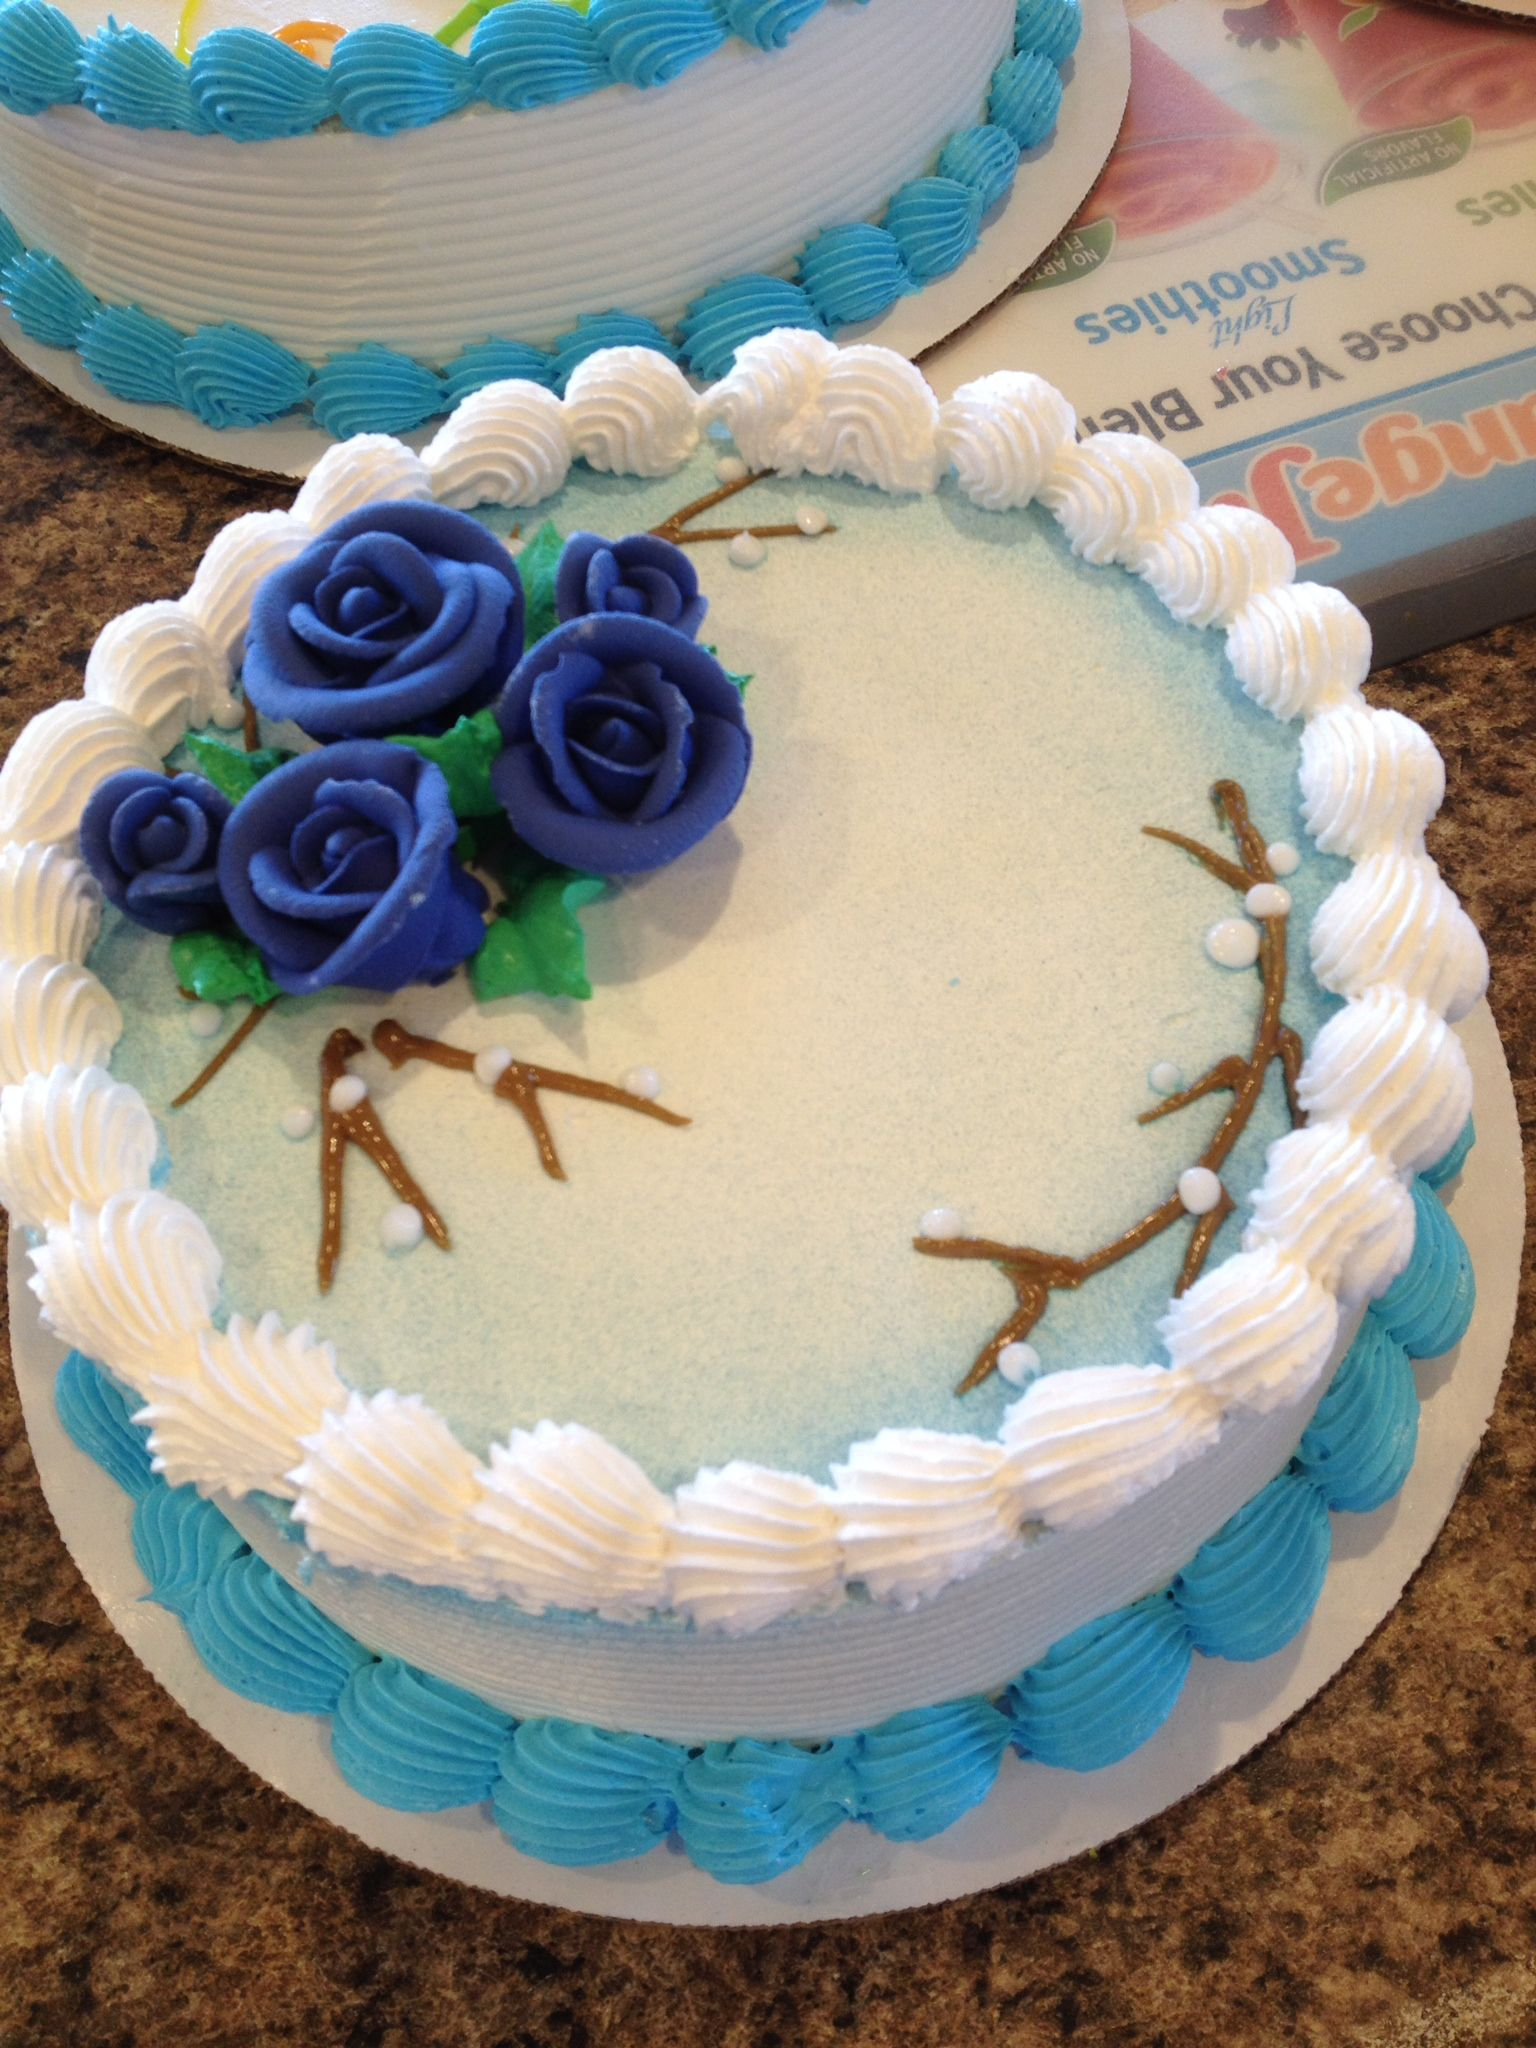 Dq cakesdairy queen simple birthday cake cake